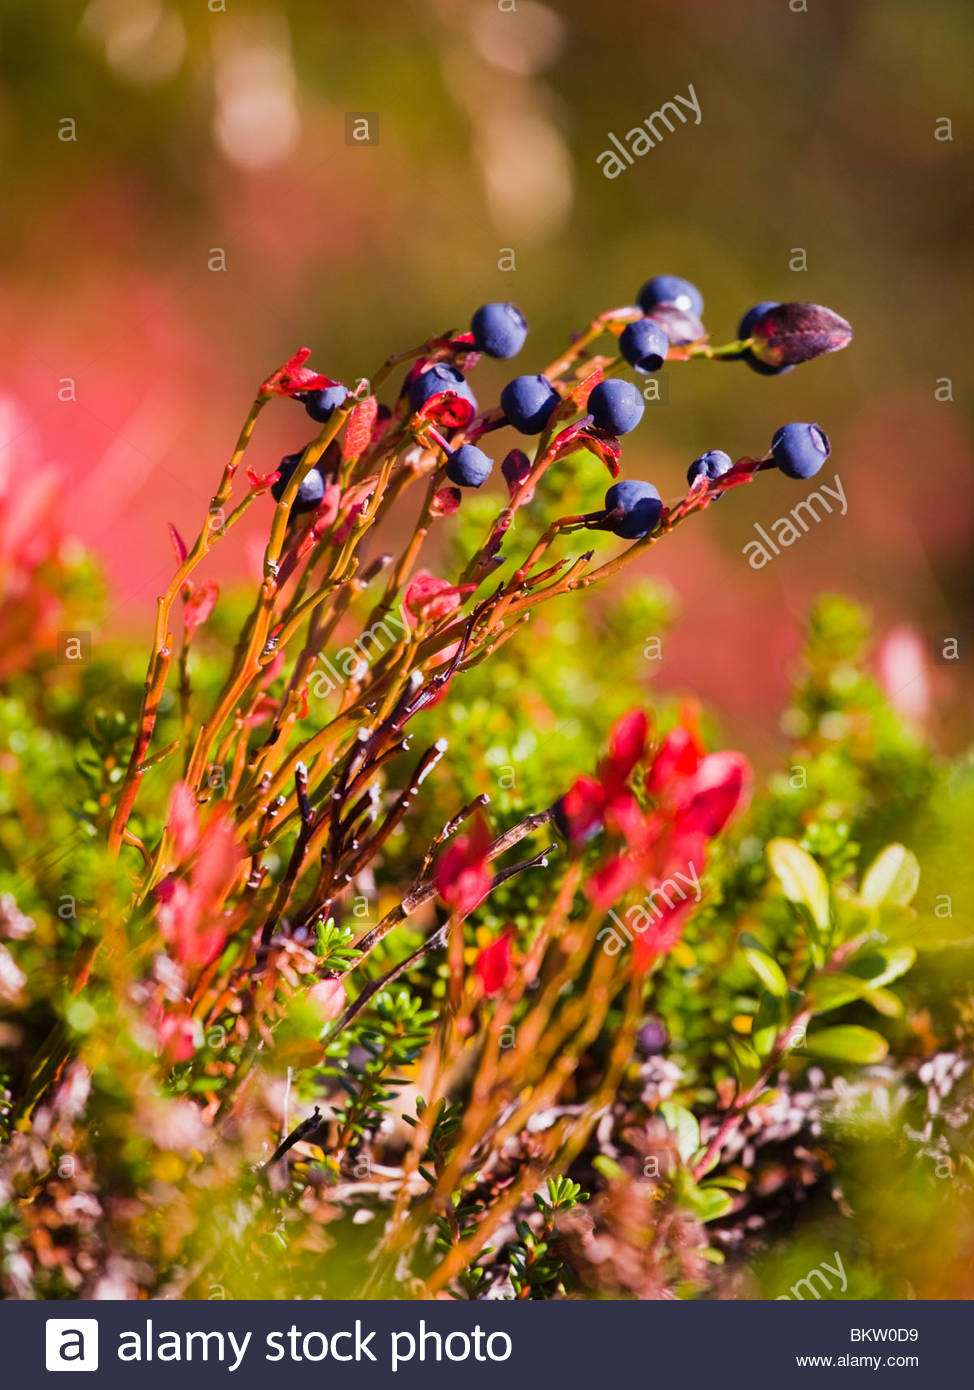 Blue berries on the ground - Stock Image